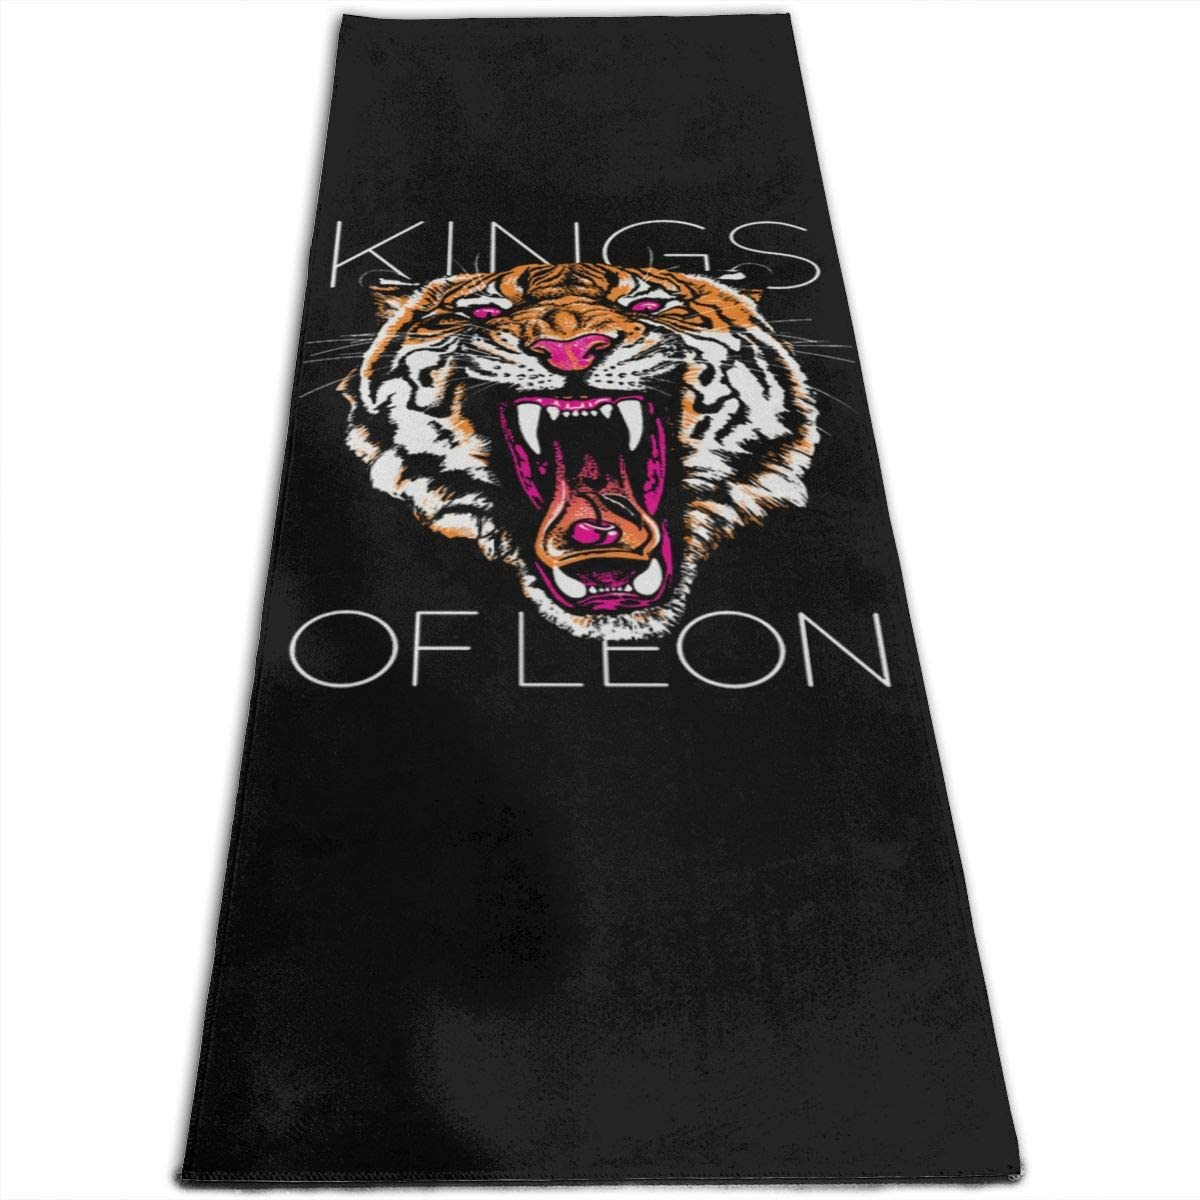 Kings of Leon Yoga Mat Non-Slip Fitness Pad Workout Exercise Gym Pad Pilates Accessory Tool